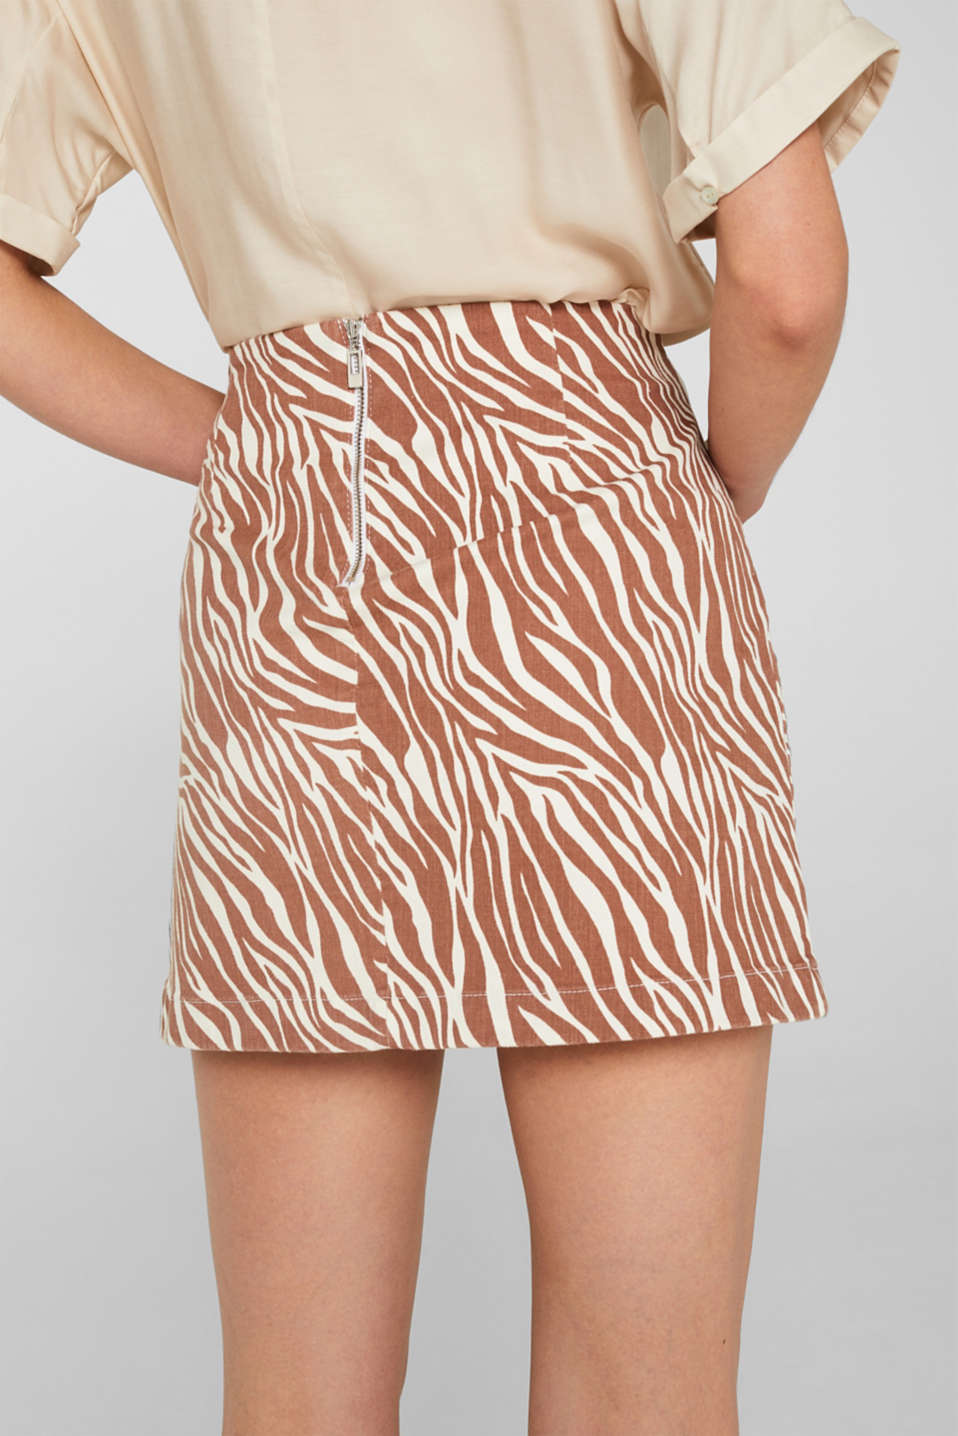 Stretch denim skirt with an animal print, BEIGE, detail image number 5